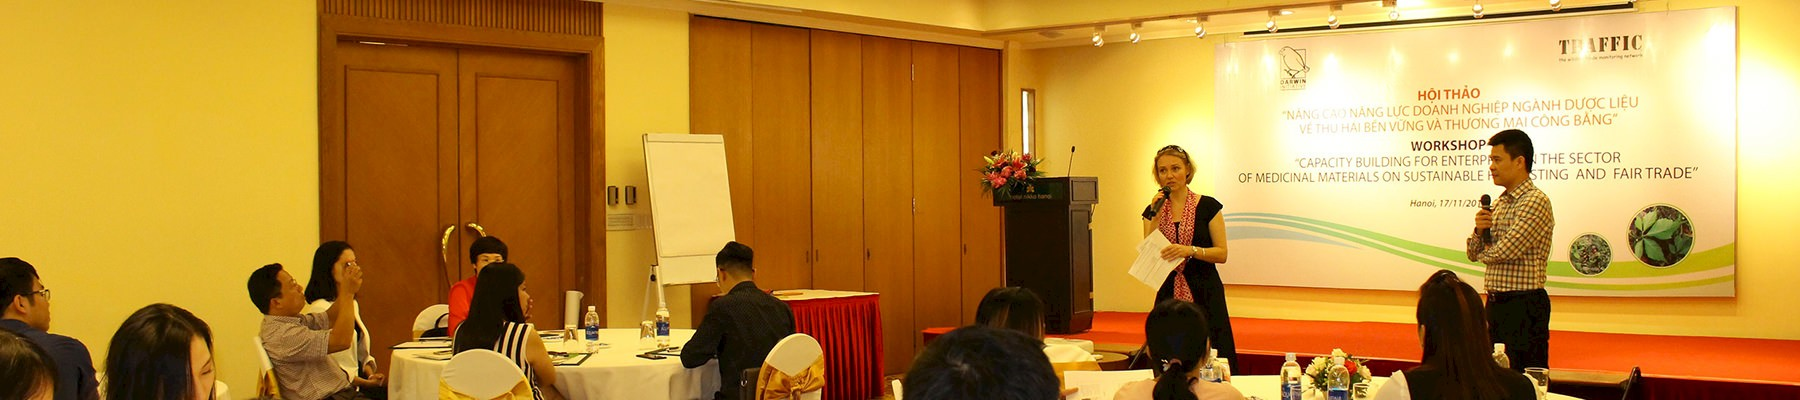 Madelon Willemsen, Director of TRAFFIC's Viet Nam office, addresses participants at the workshop